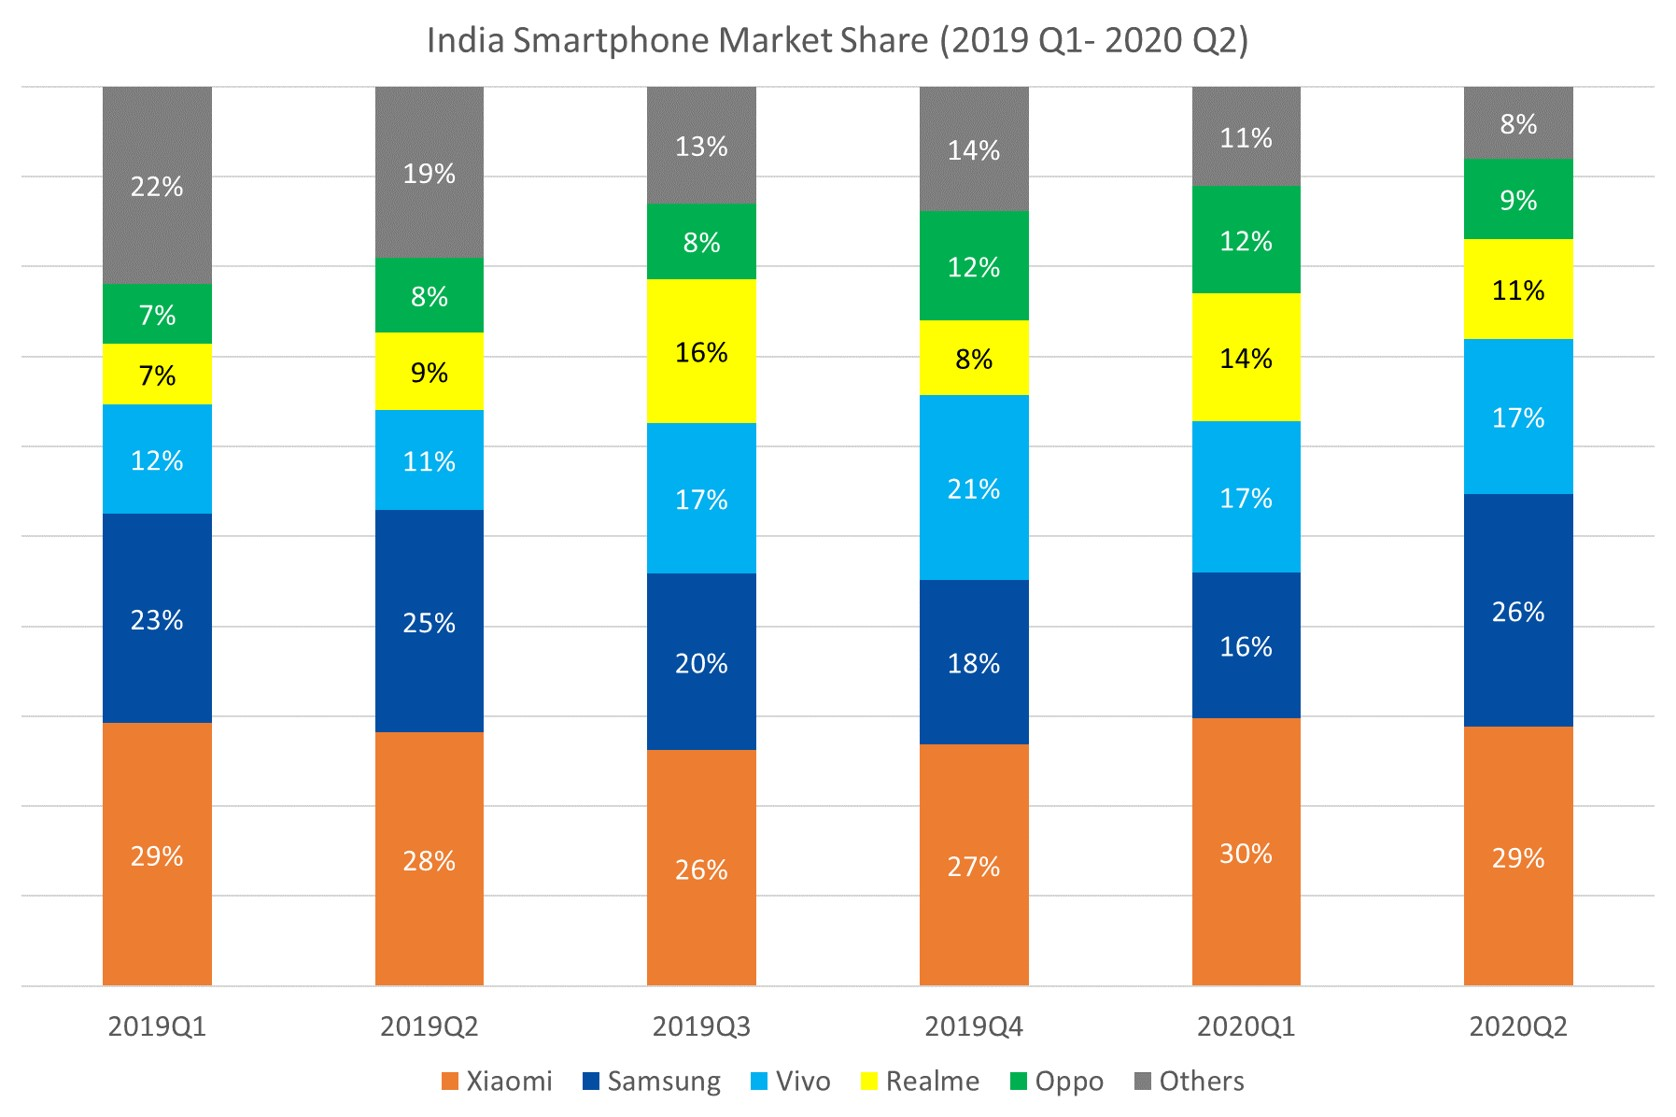 Counterpoint India Smartphone Market Share Q1 2019 - Q2 2020